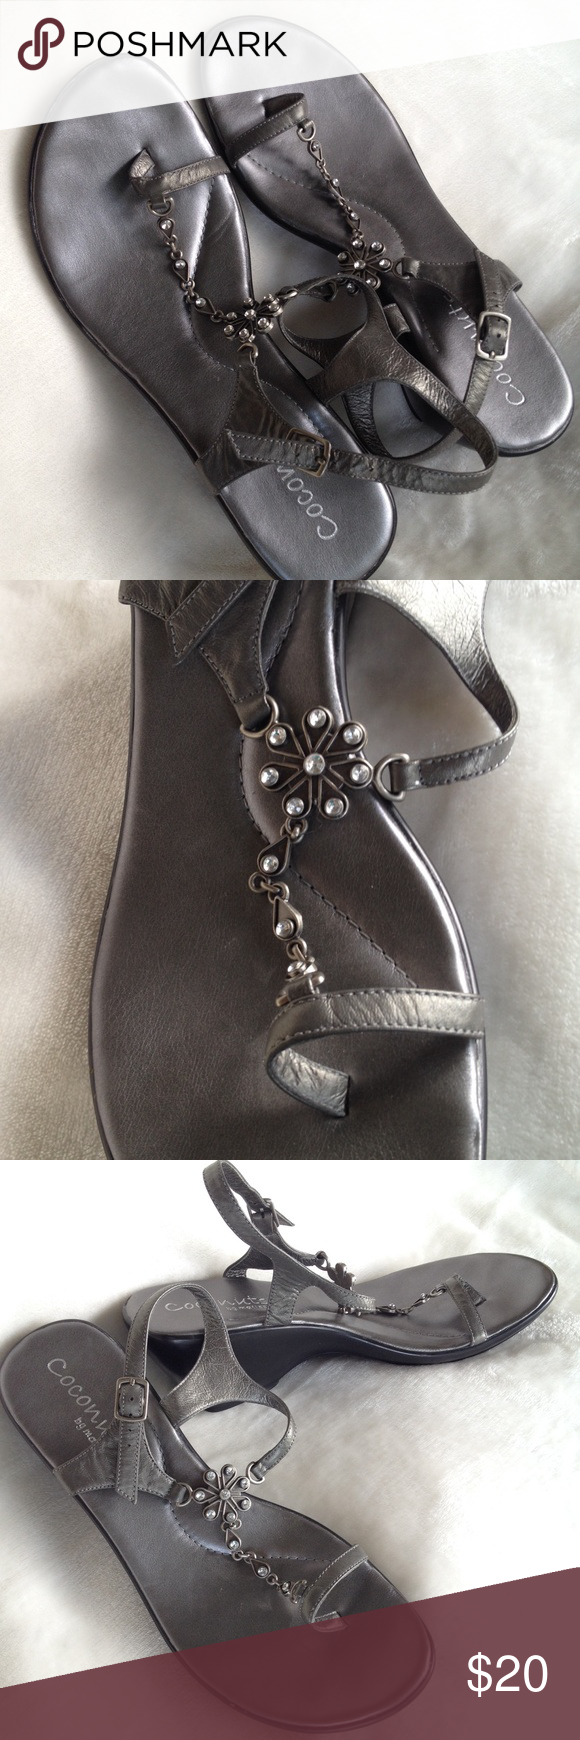 Coconuts by matisse - Size 11 These fun sandals are made with a leather upper. They are in excellent shape.  The color is a gunmetal gray. Coconuts Shoes Sandals